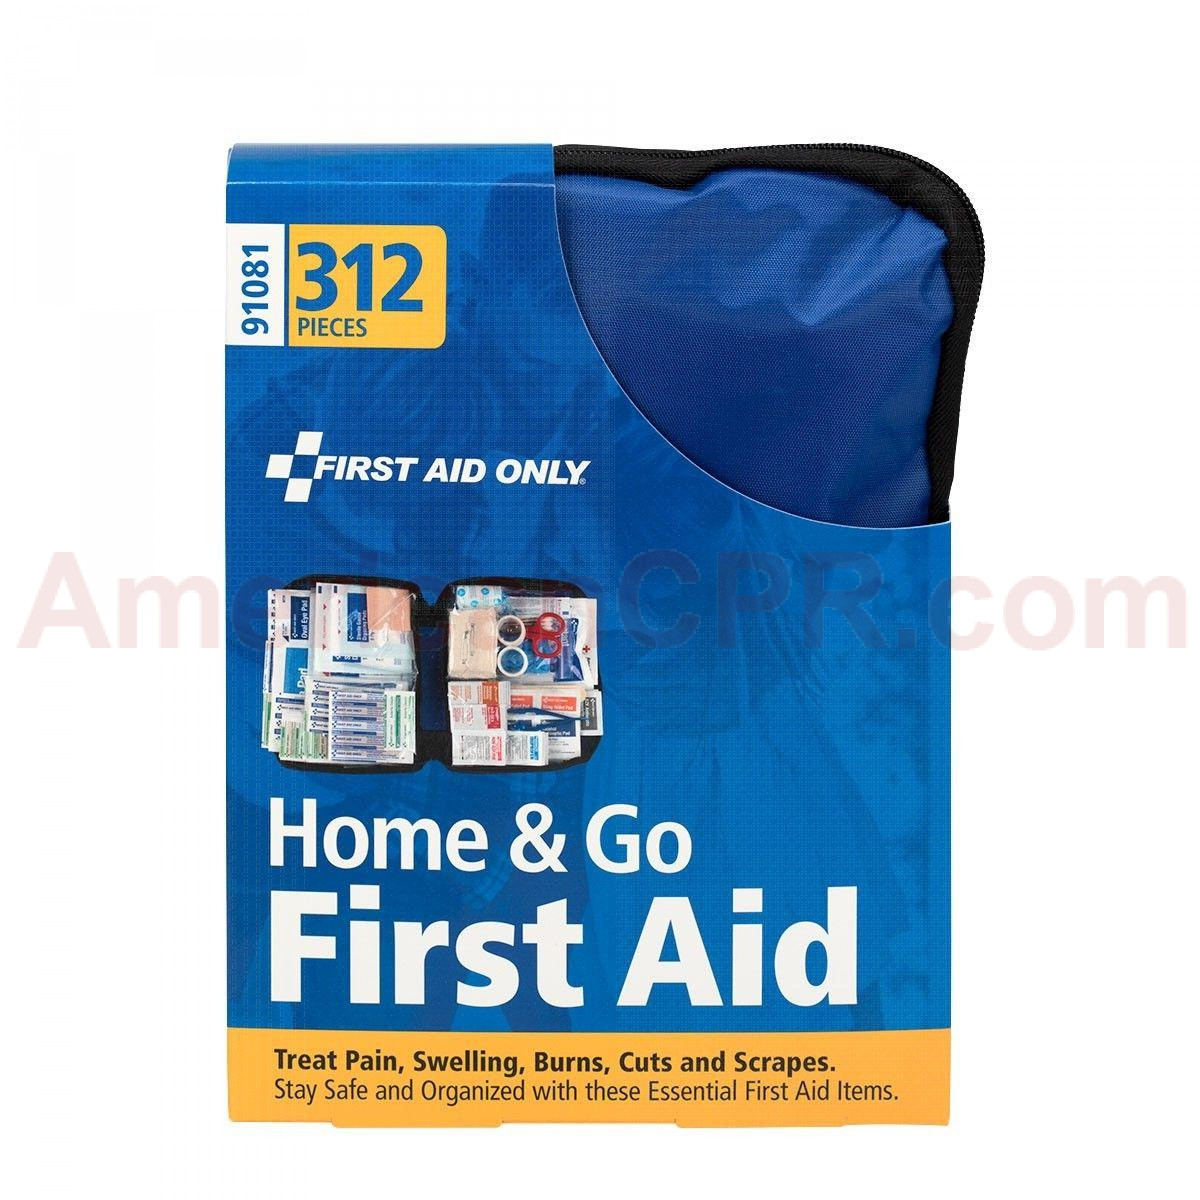 All Purpose First Aid Kit, Softsided, 312 Pieces - Large - First Aid Only